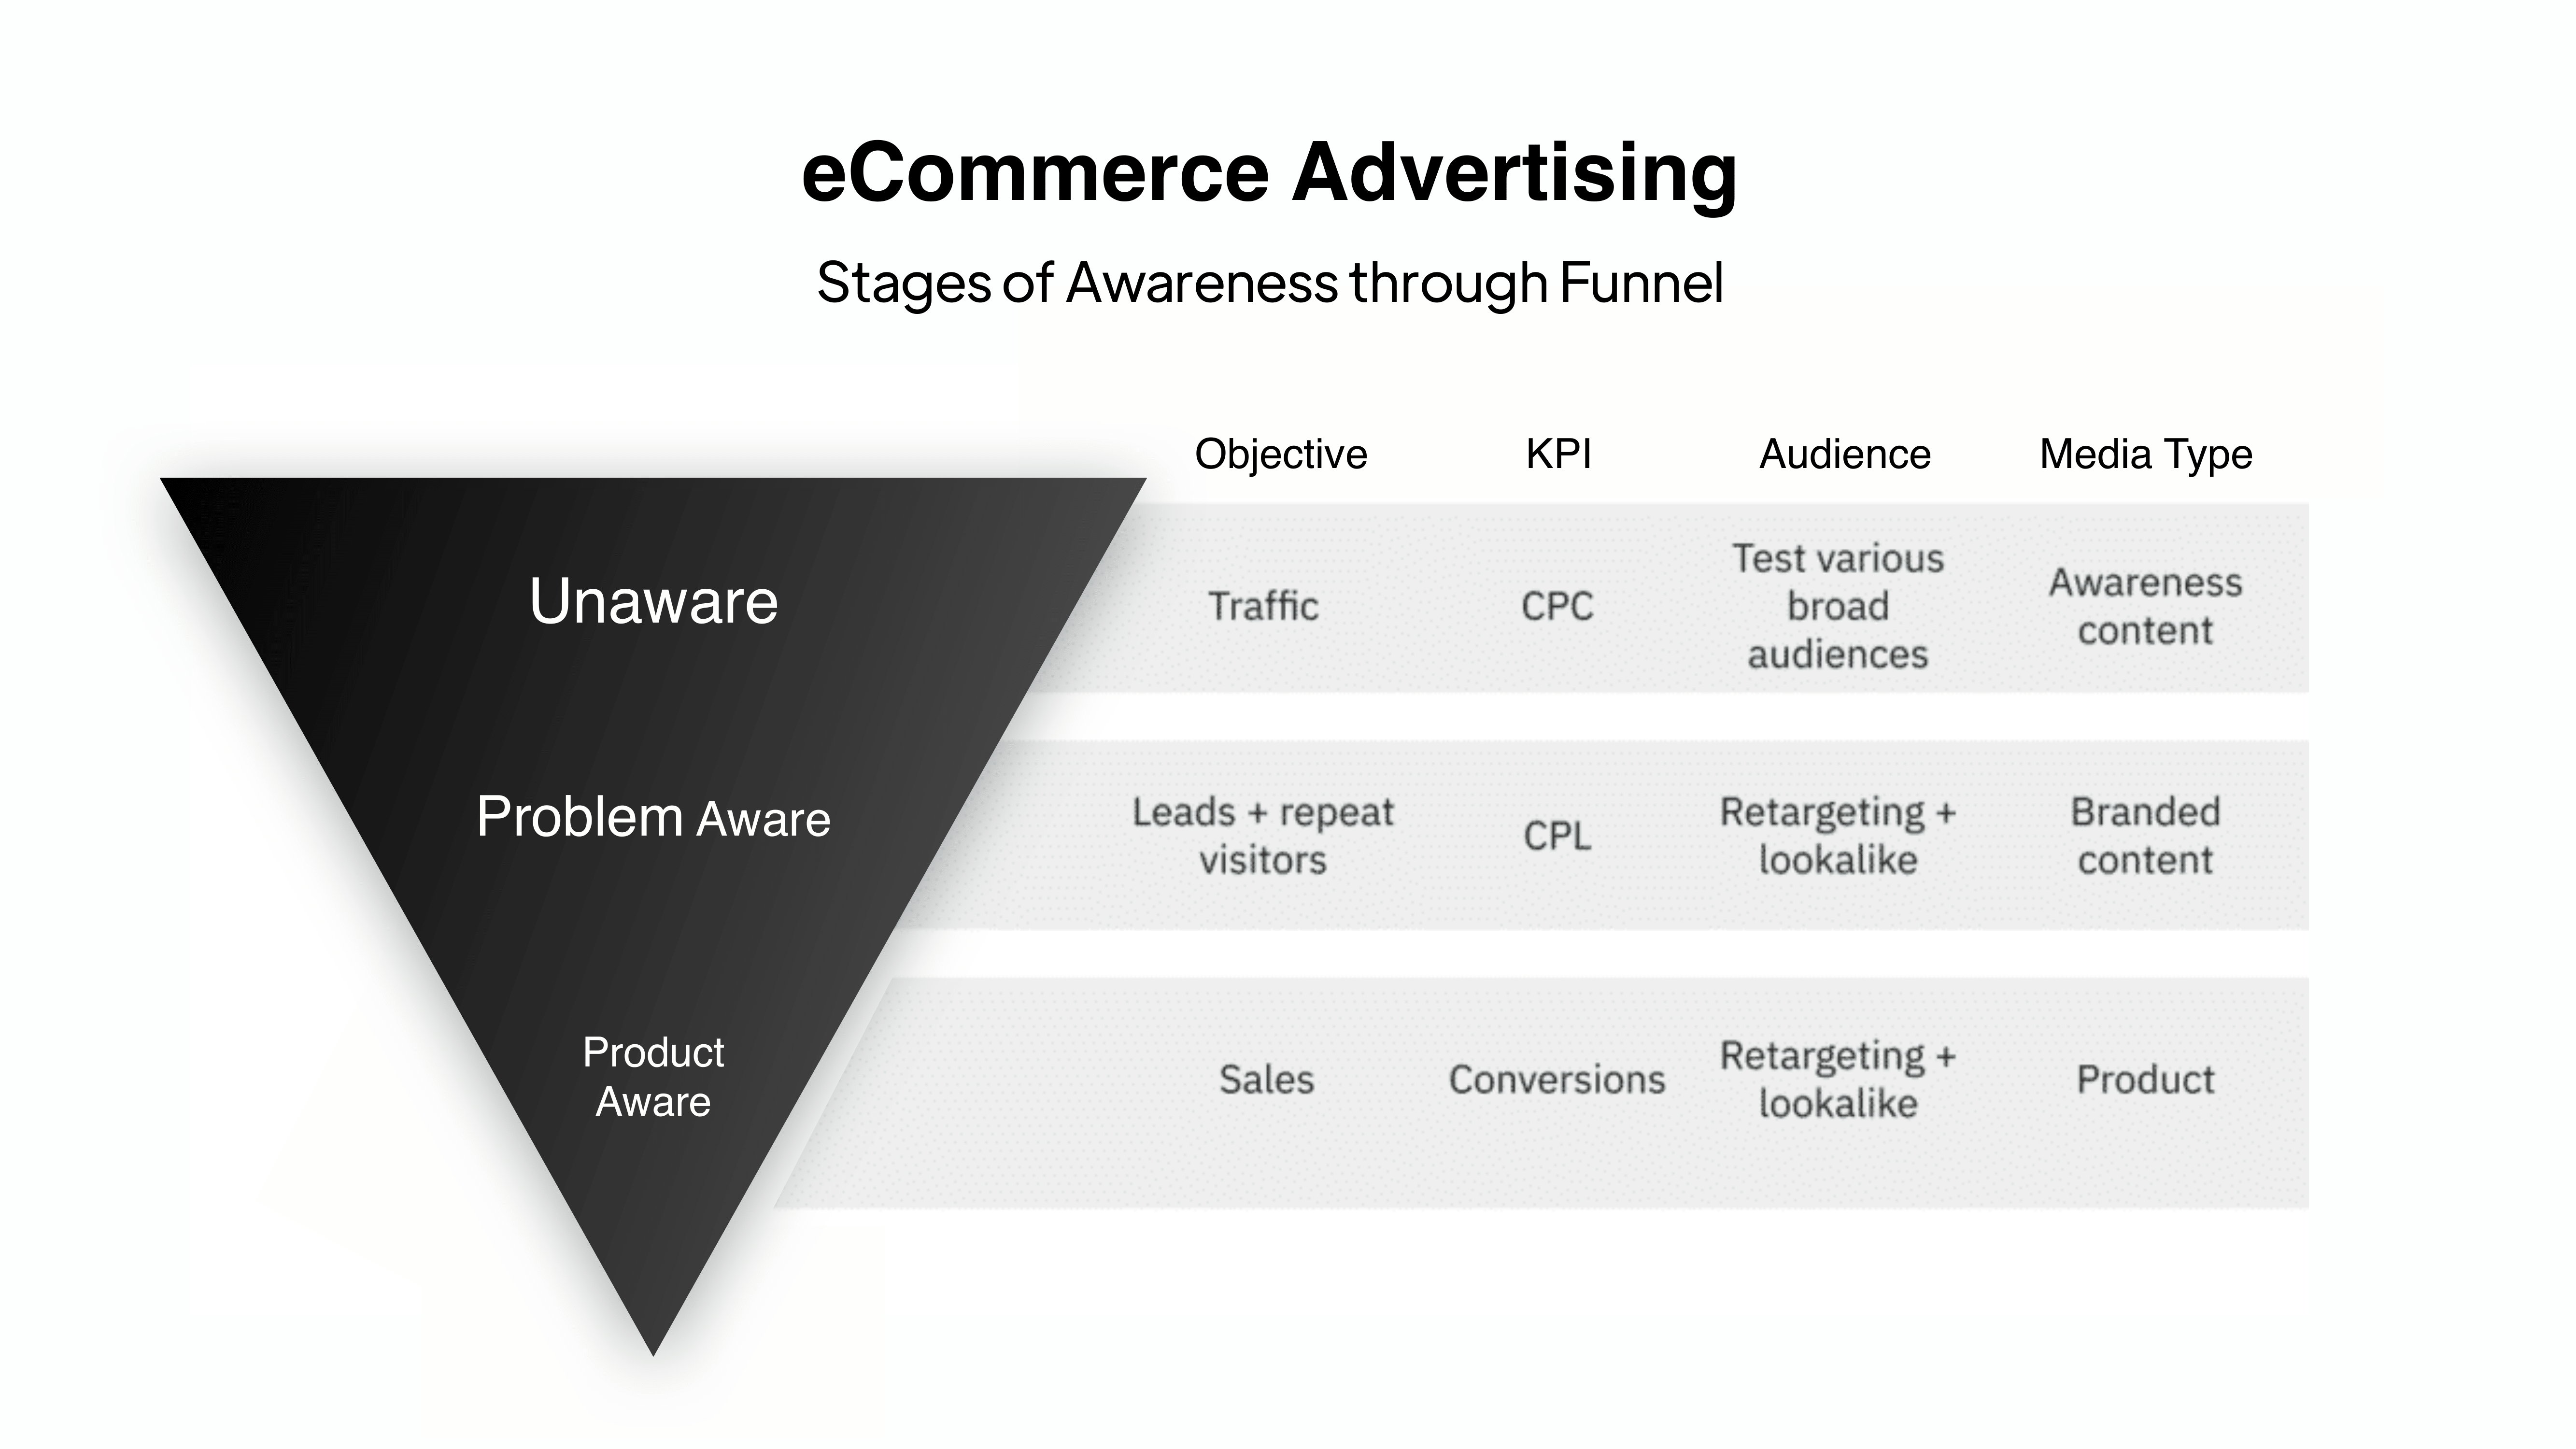 Digital agency on DTC: Consumer awareness level in a digital marketing and advertising strategy funnel